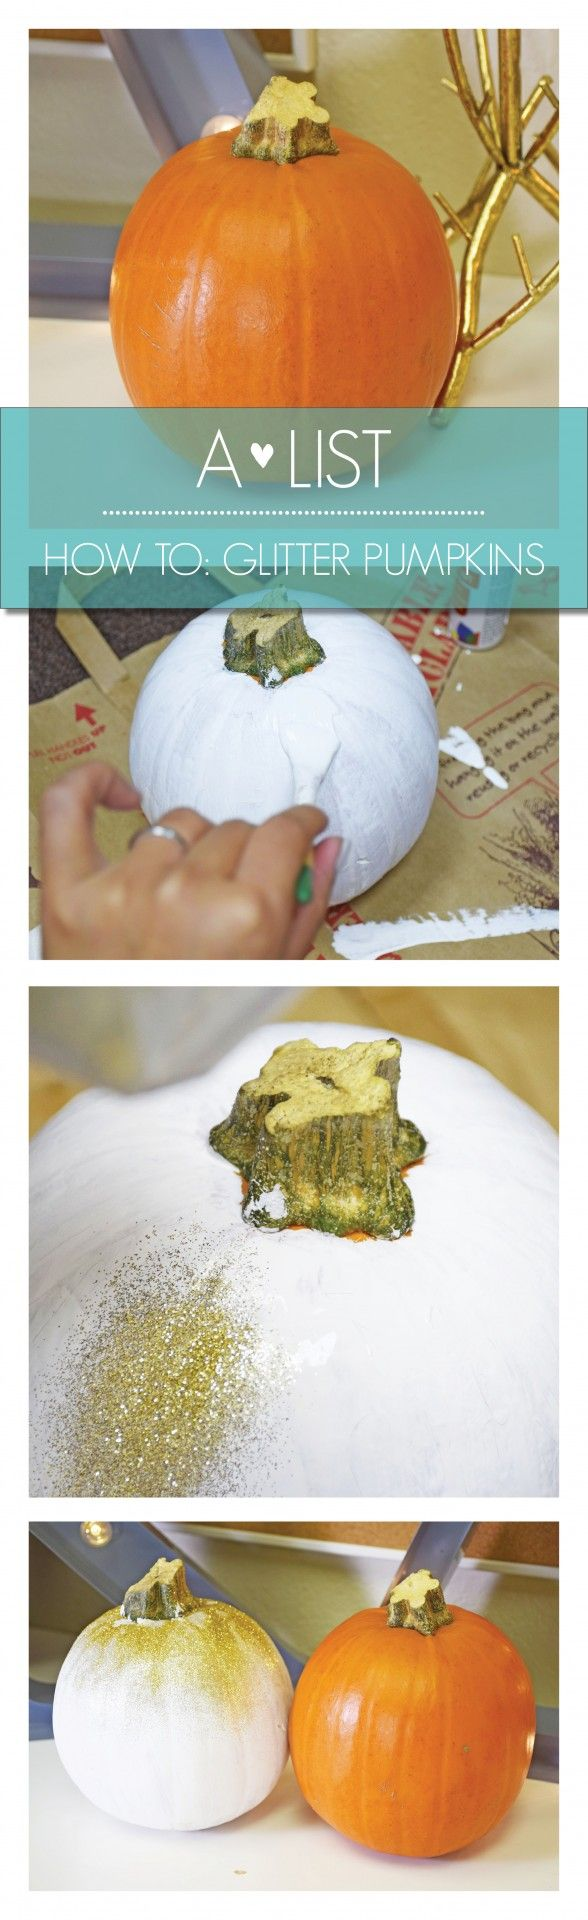 5 easy steps to make the perfect glitter pumpkin - details on the blog! #pumpkin #decor